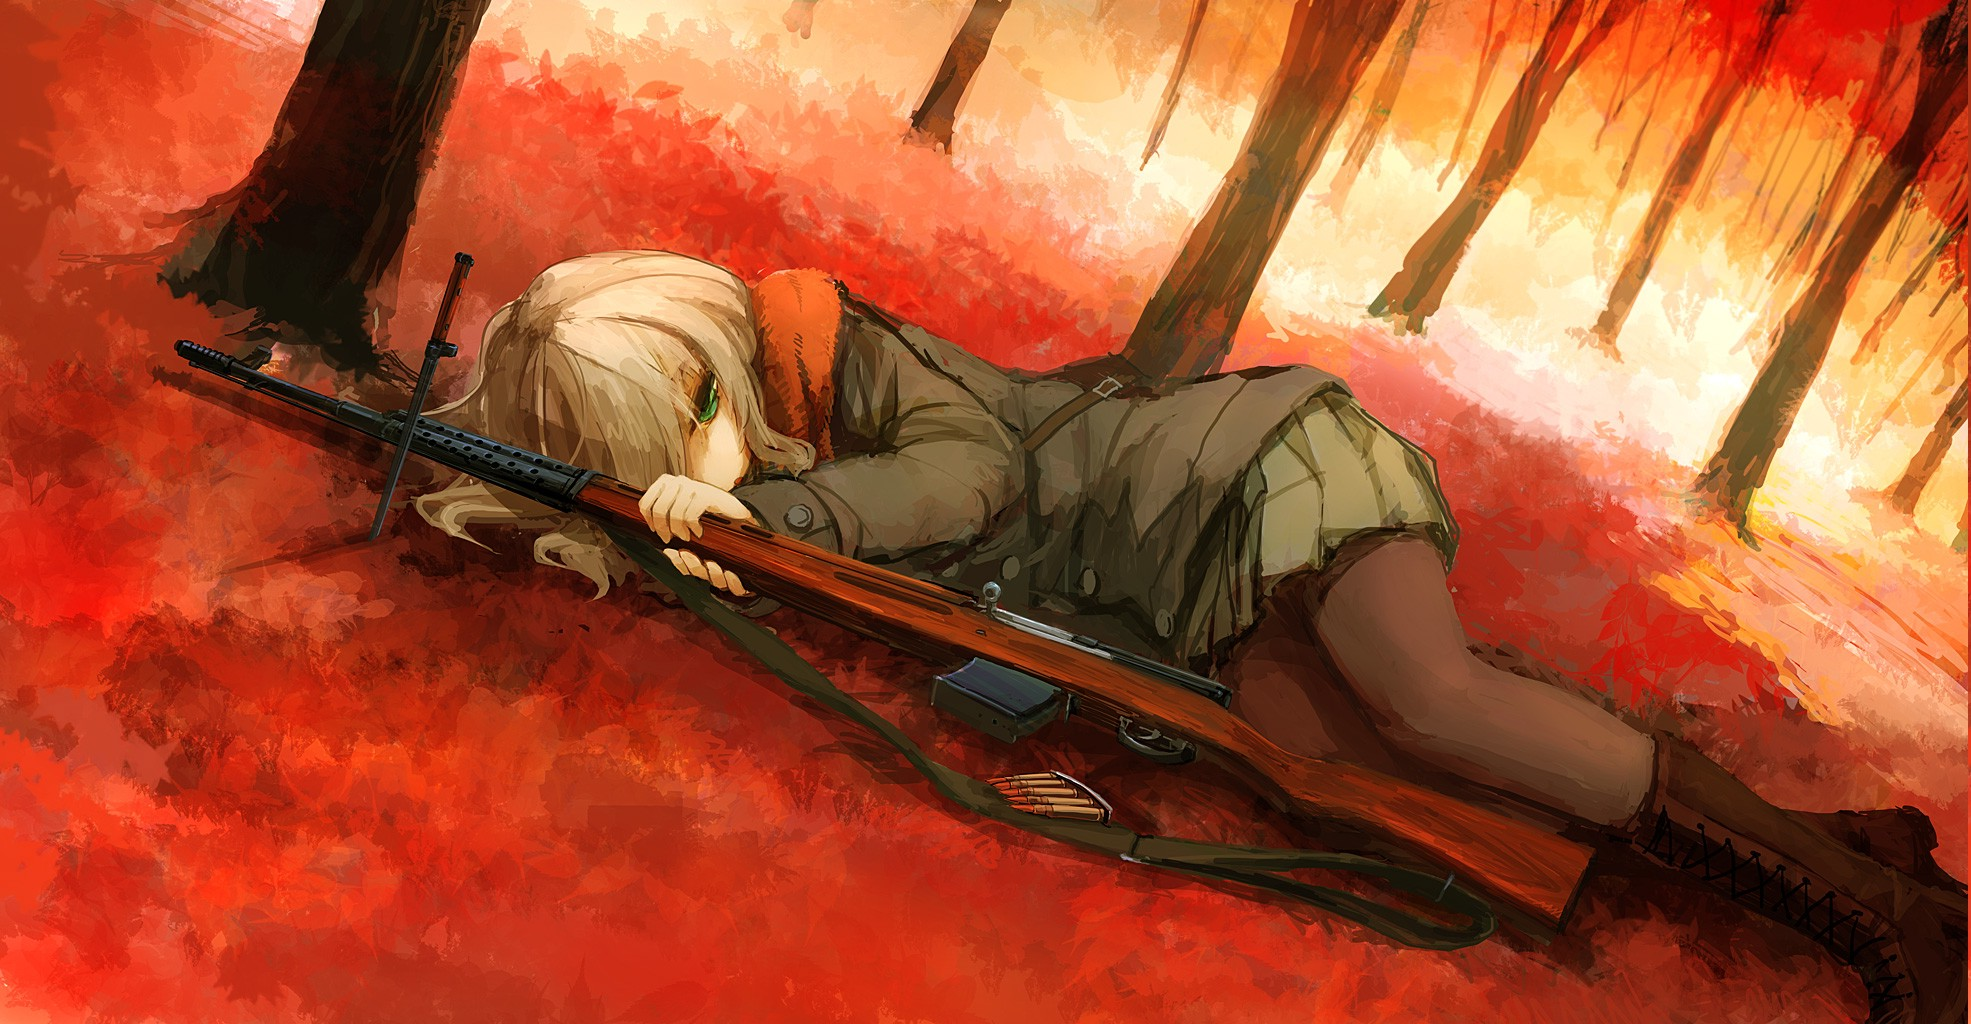 Falling In Love Hd Wallpapers Anime Girls Anime Women With Guns Fall Weapon Rifles